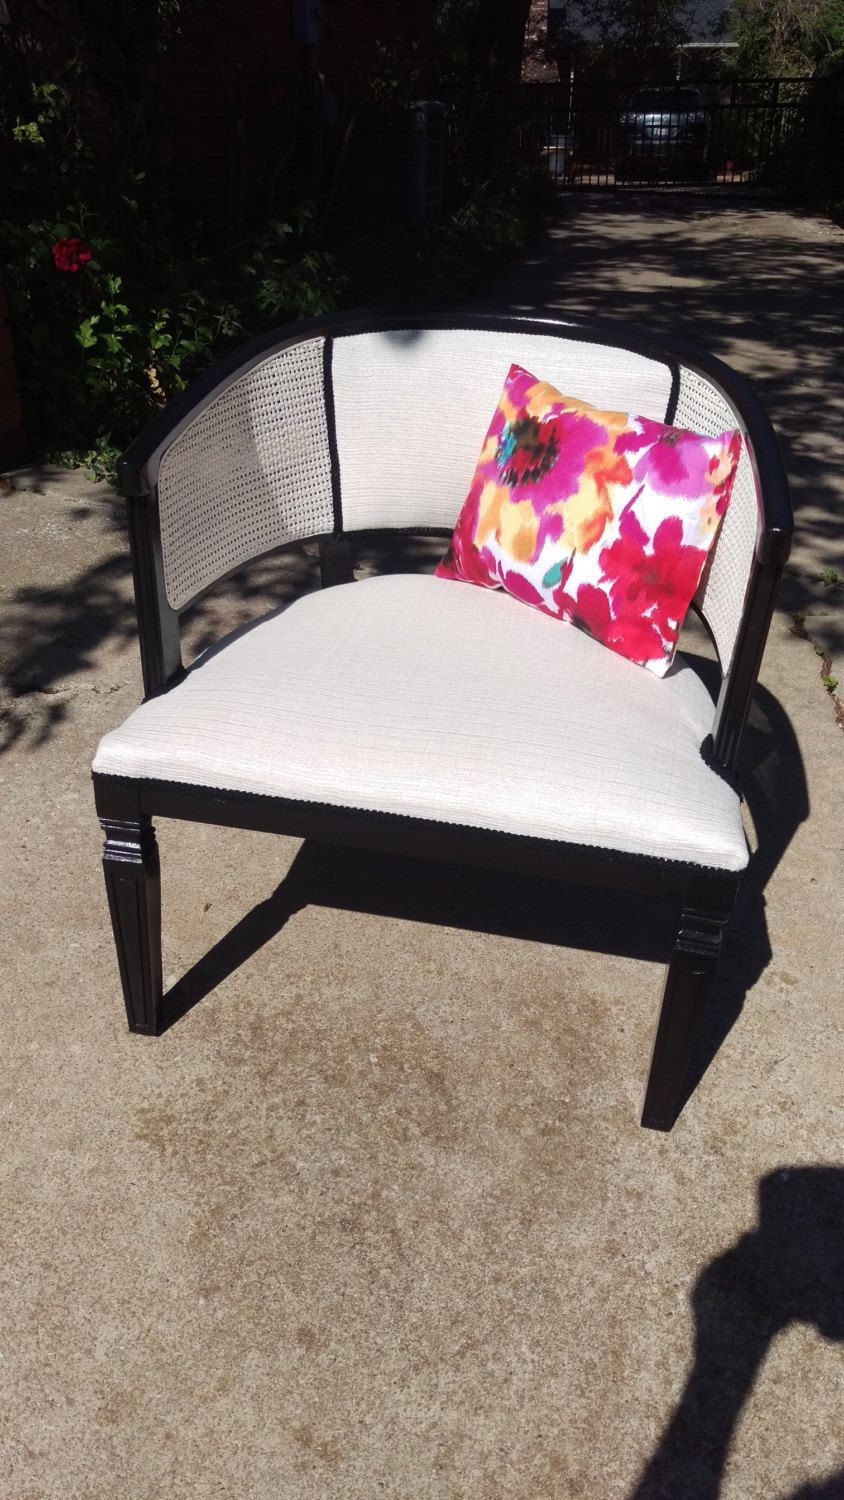 Vintage Cane Back Barrel Chair By Cordoncreations On Etsy Diy Furniture Decor Outdoor Chaise Lounge Chair